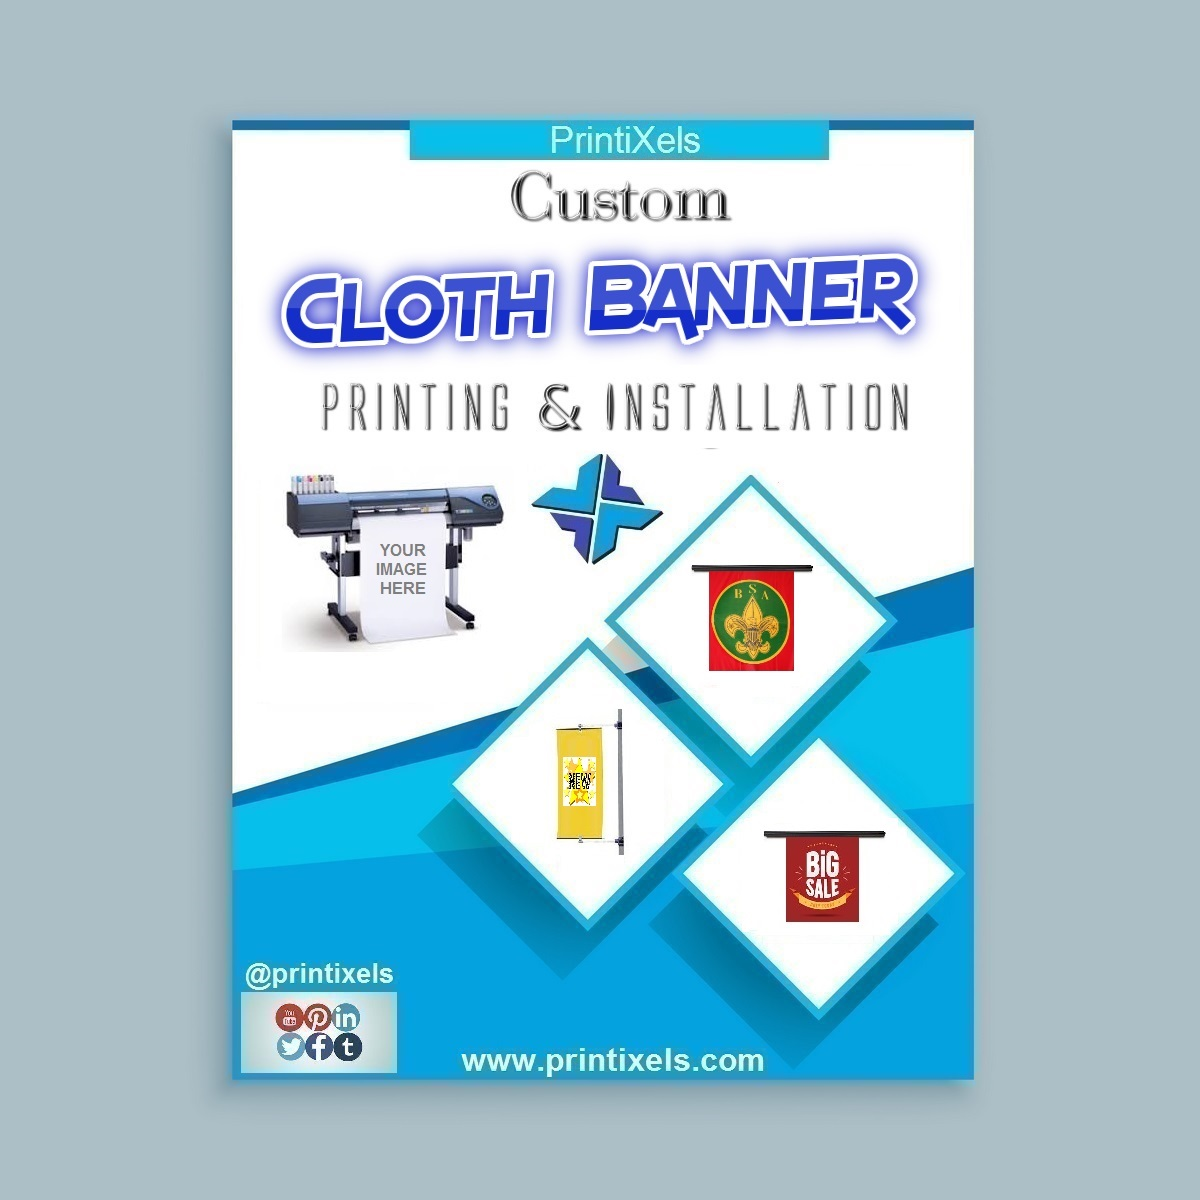 Fabric Cloth Banner Printing & Installation